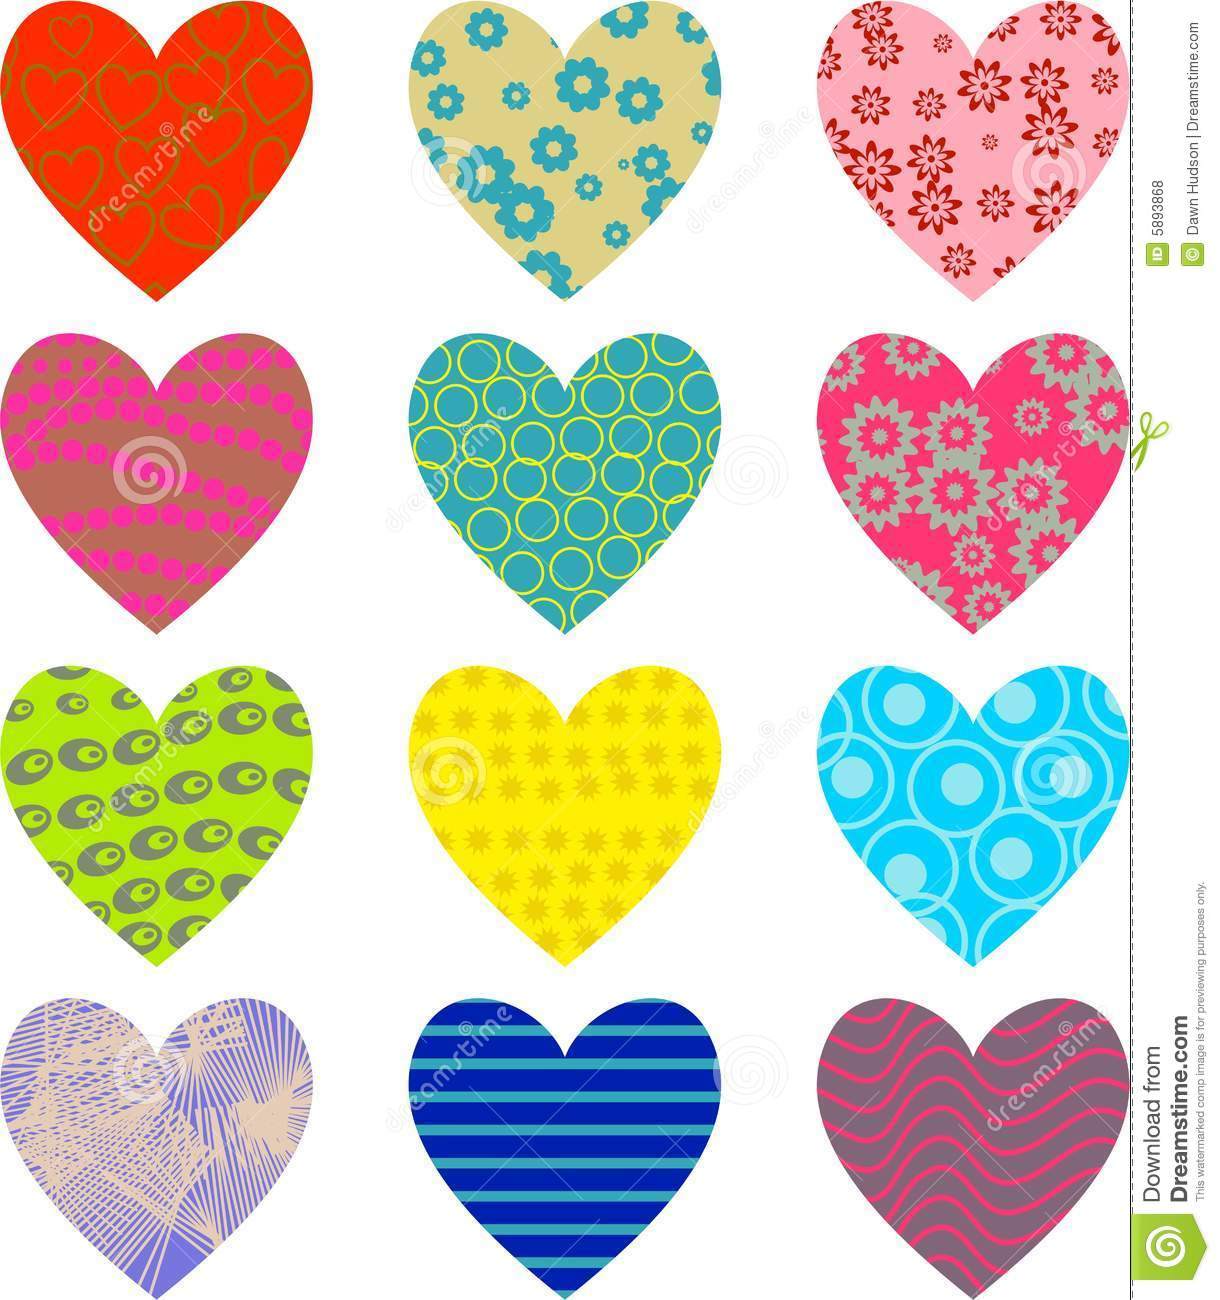 Artistic abstract patterned heart wallpaper background design.